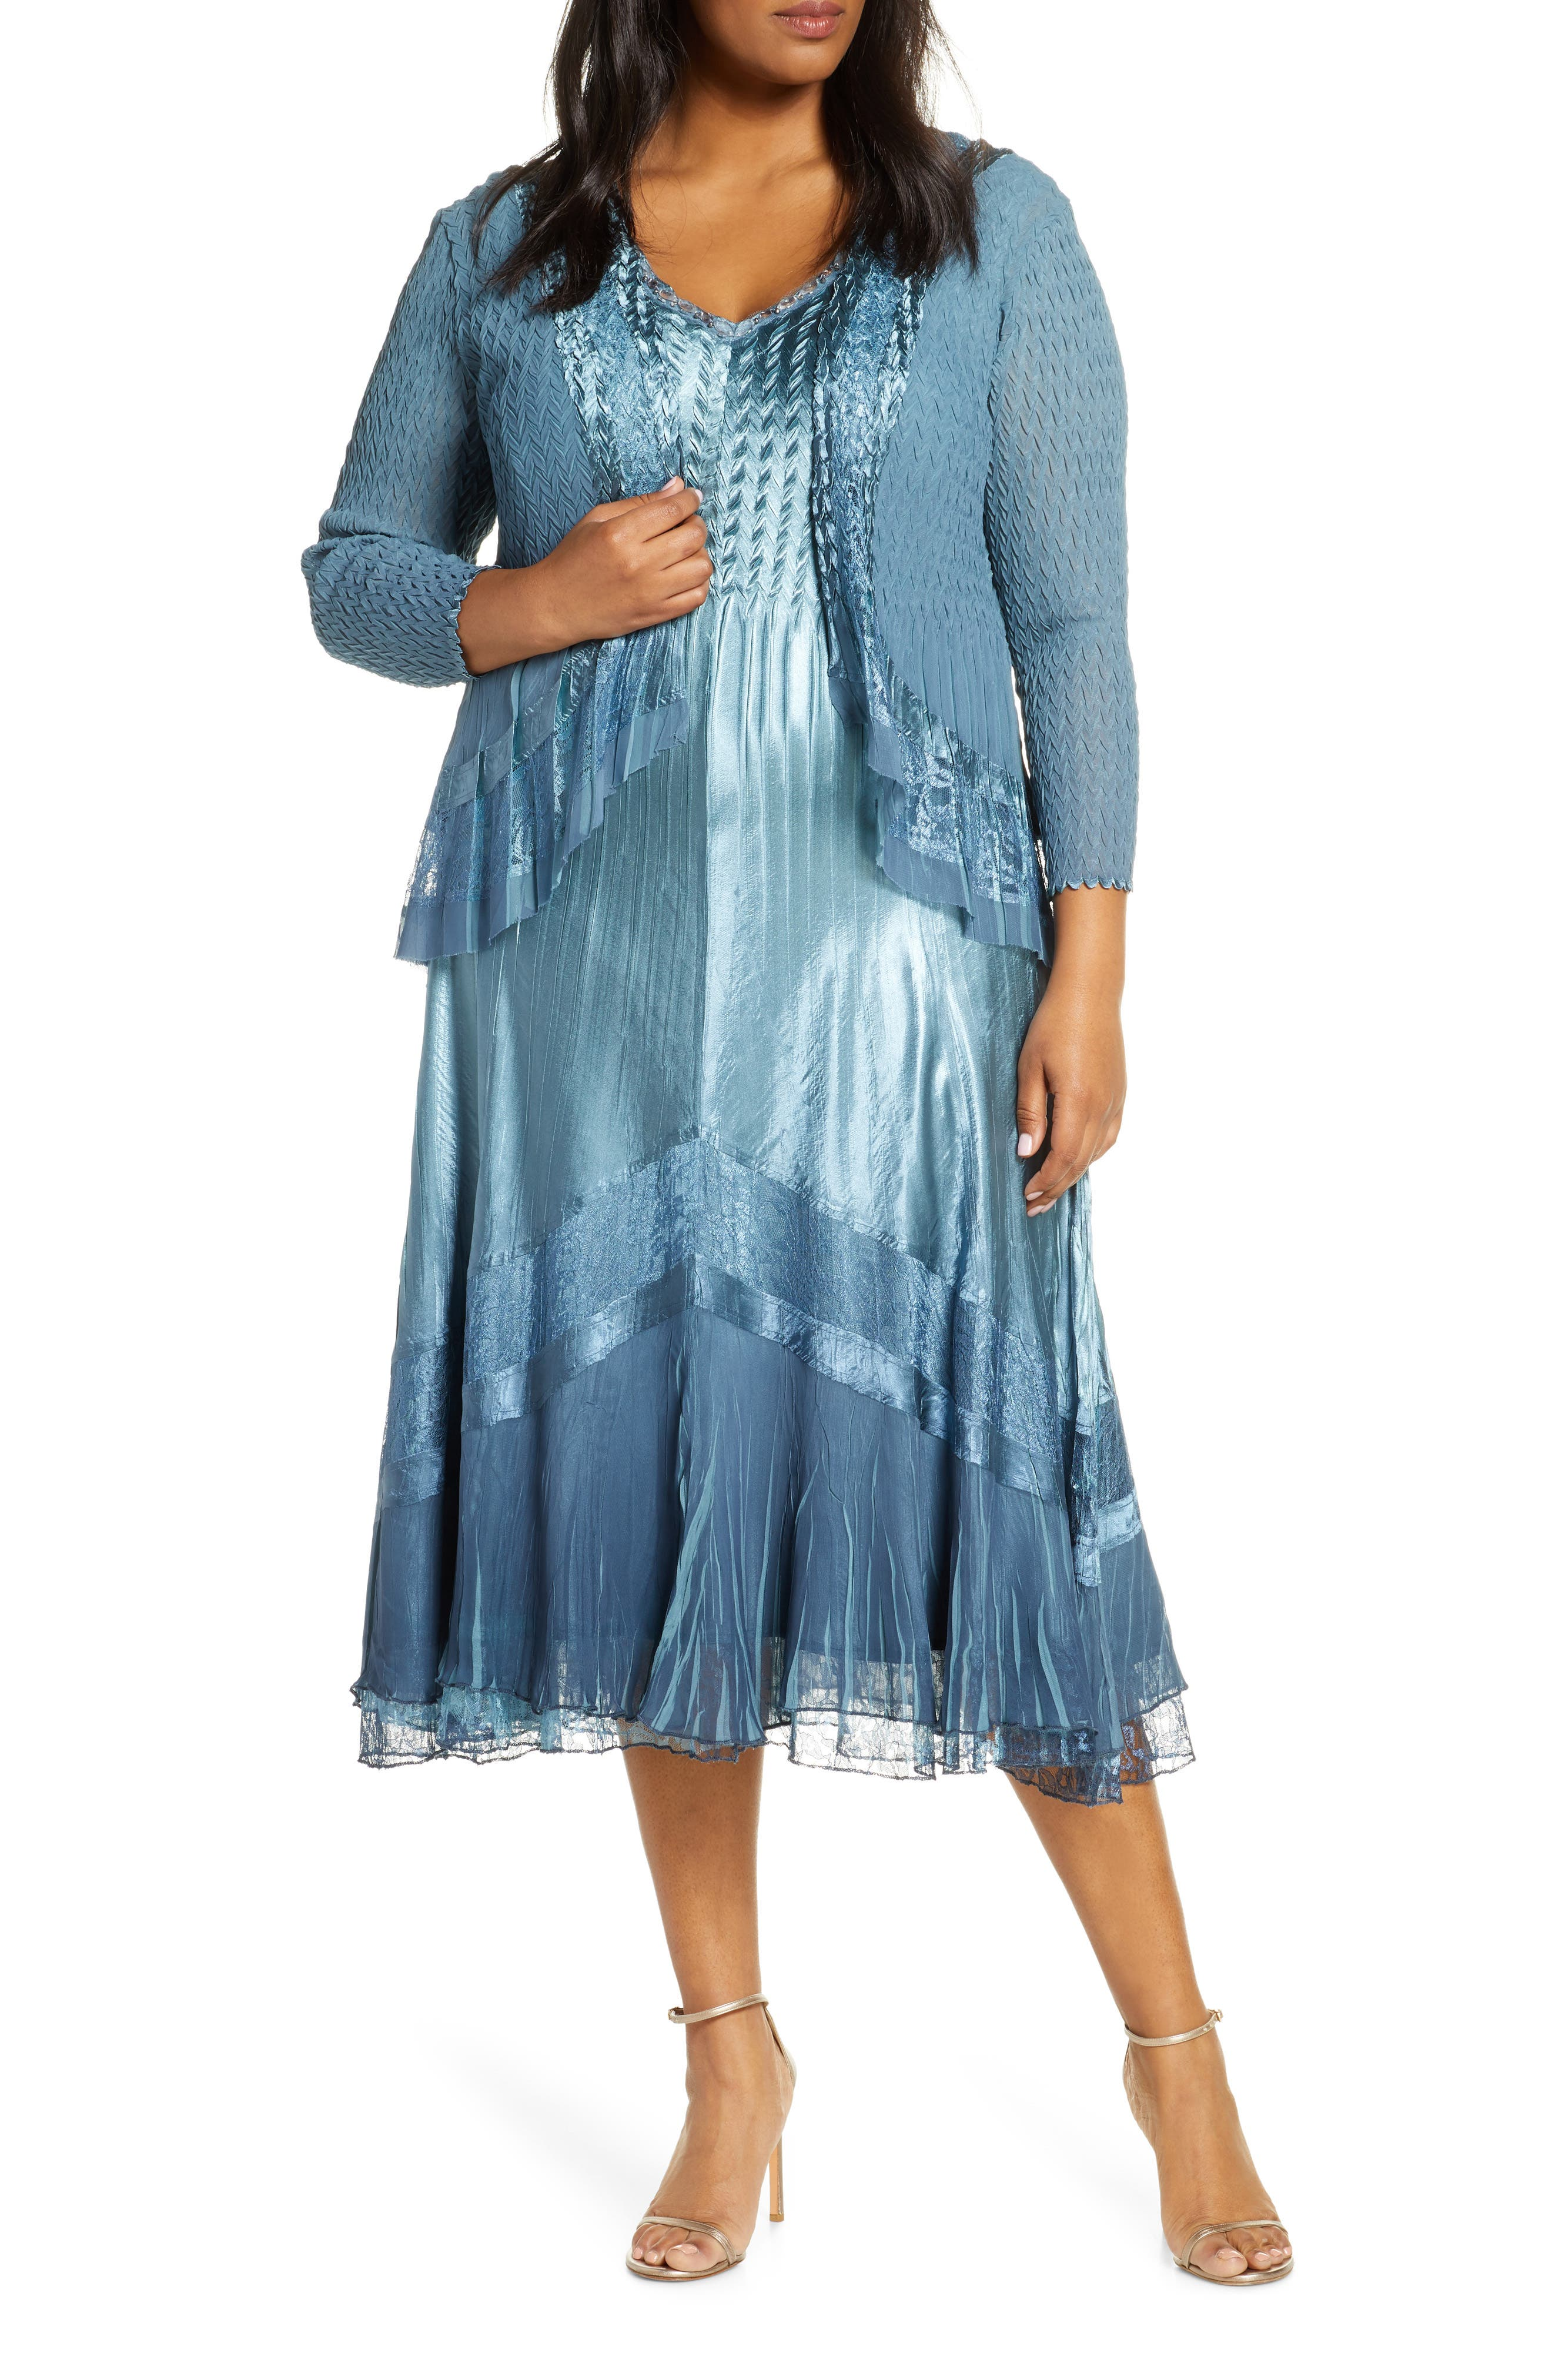 Downton Abbey Inspired Dresses Plus Size Womens Komarov Chevron Lace Inset Dress With Jacket $458.00 AT vintagedancer.com